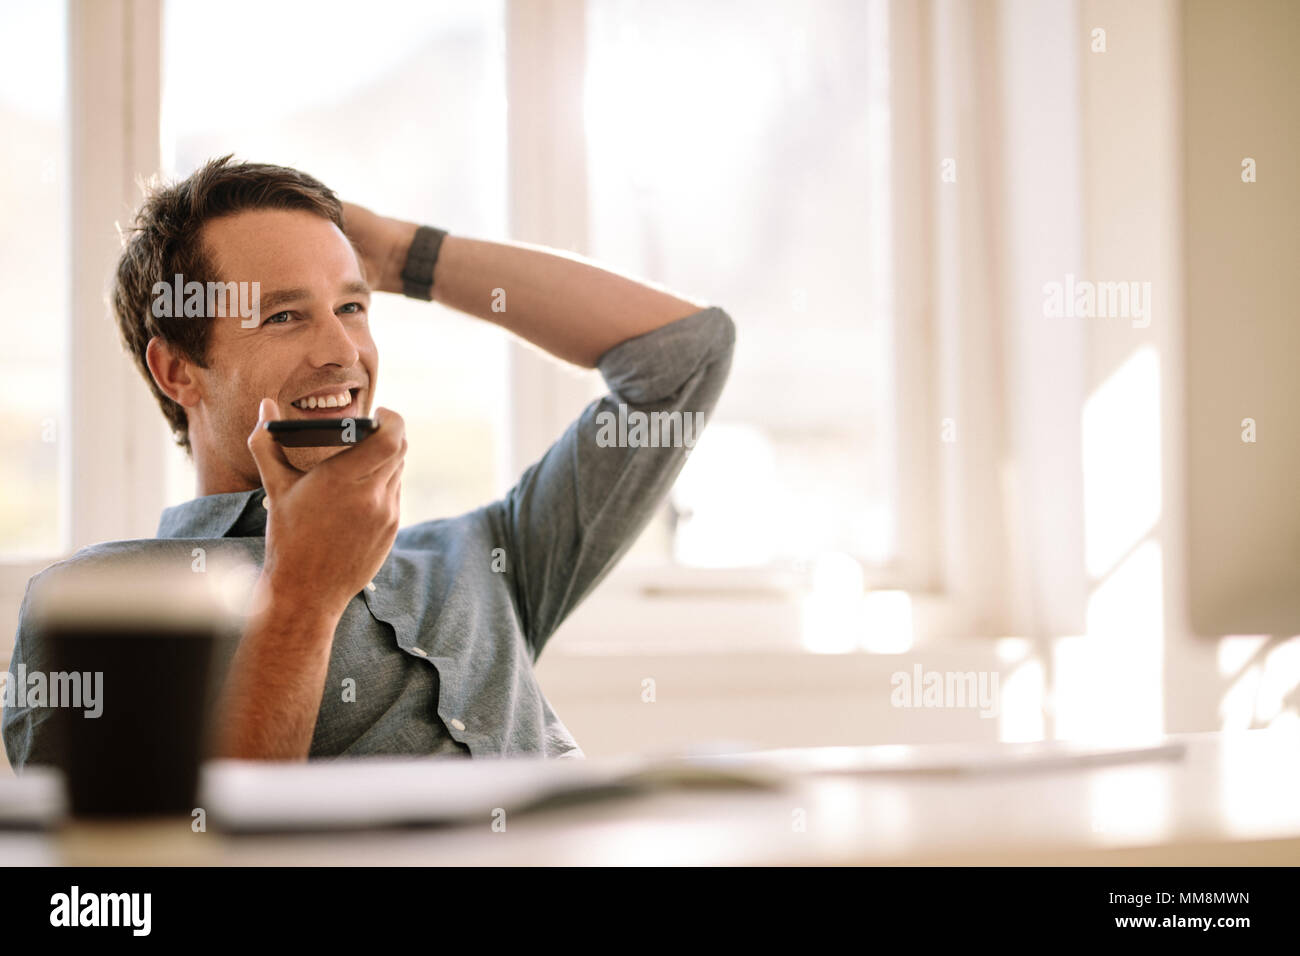 Man holding mobile phone in hand and talking on loudspeaker looking away. Businessman working from the comfort of his home. Stock Photo